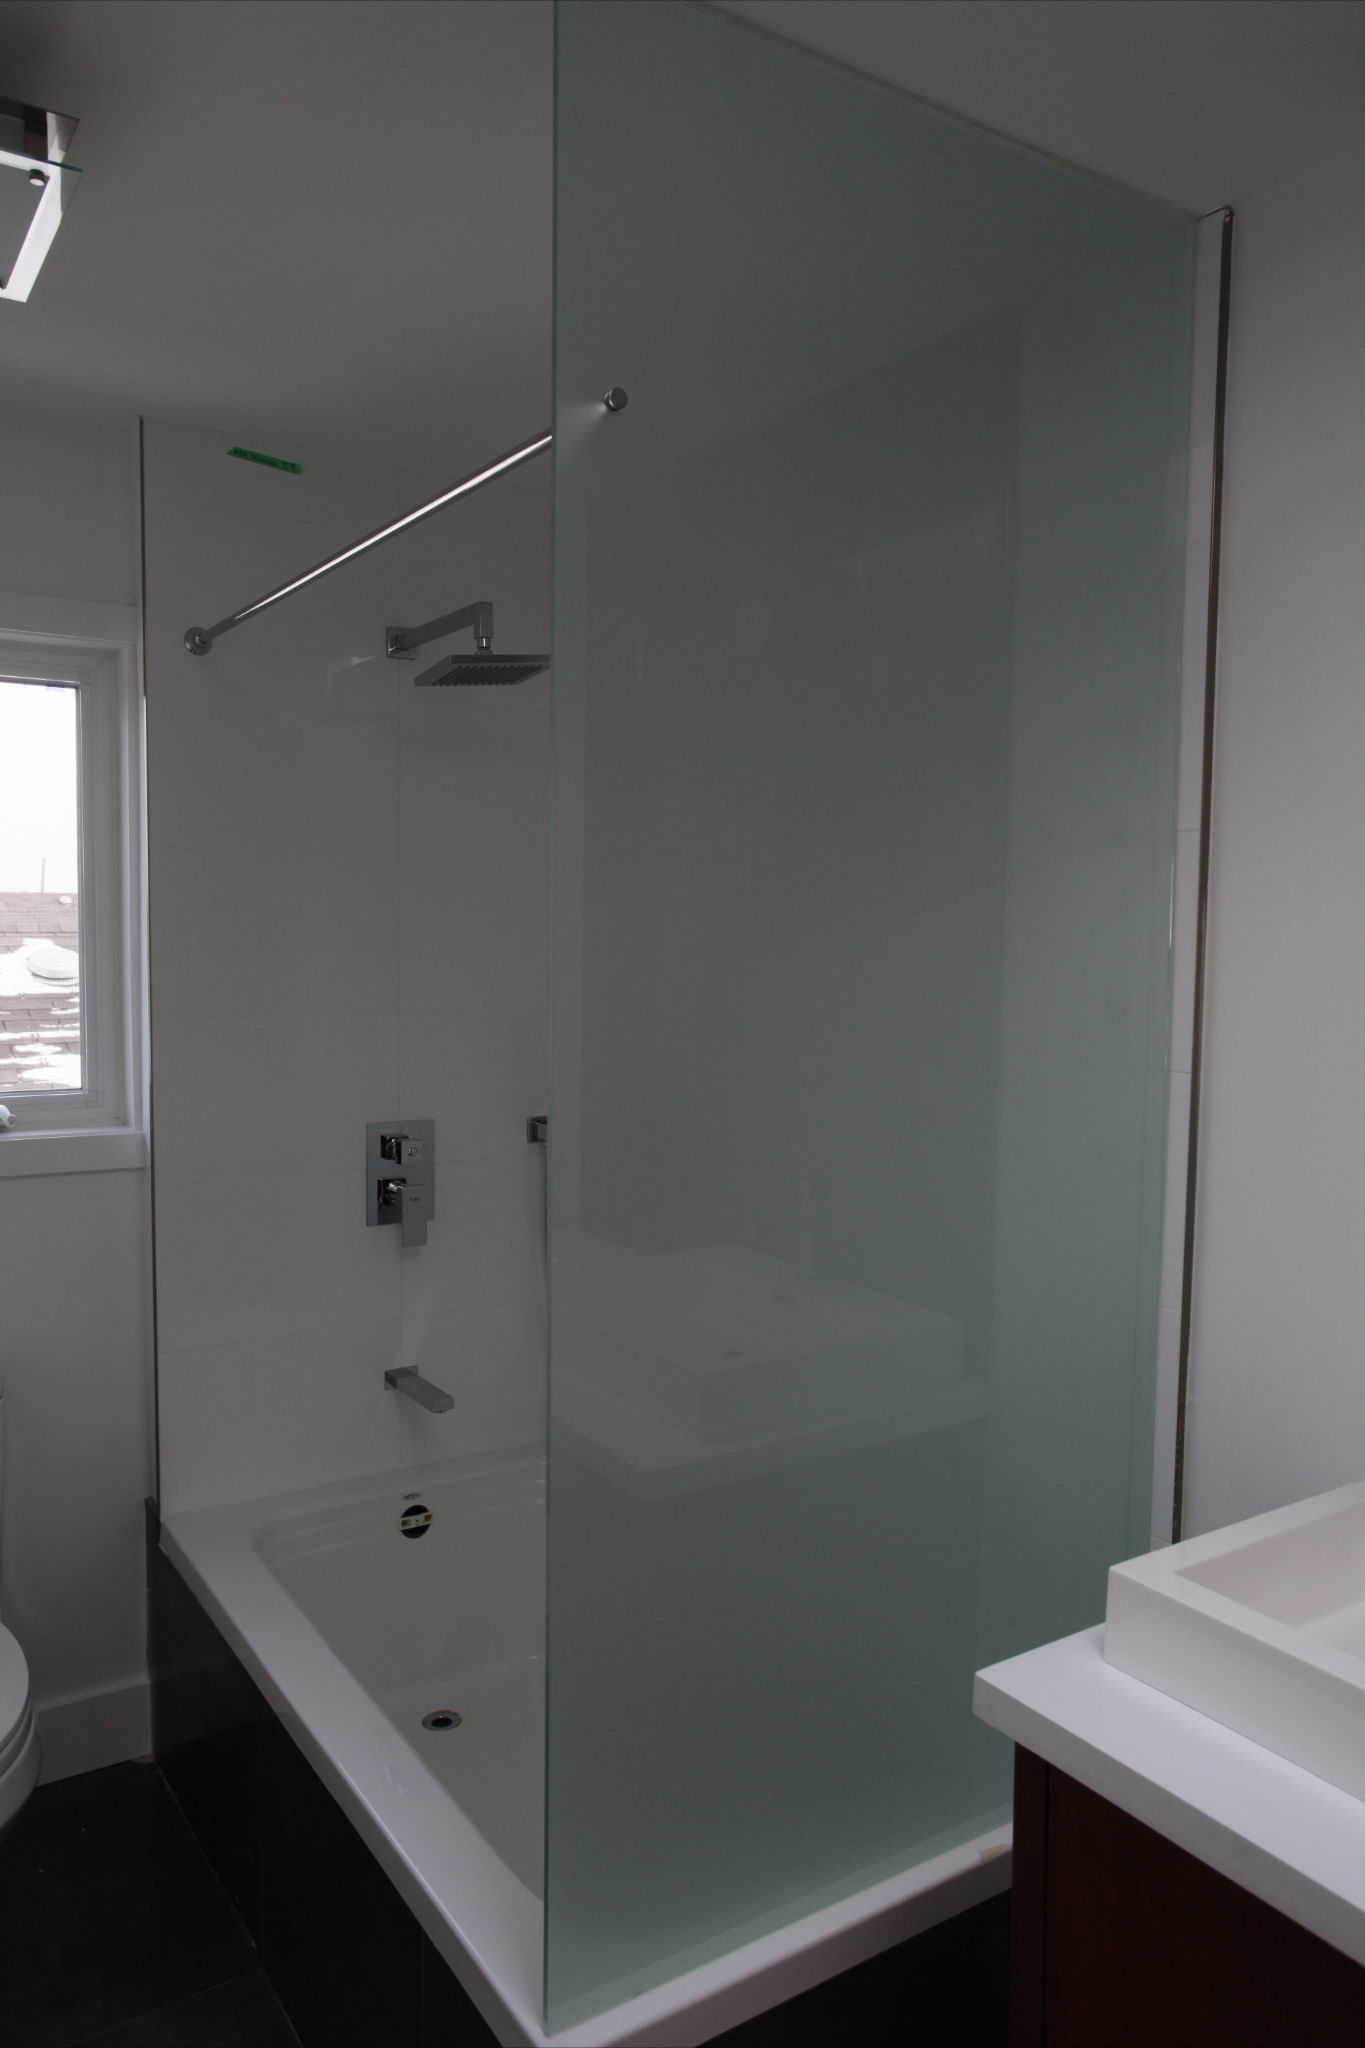 fixed screen with shower curtain rod